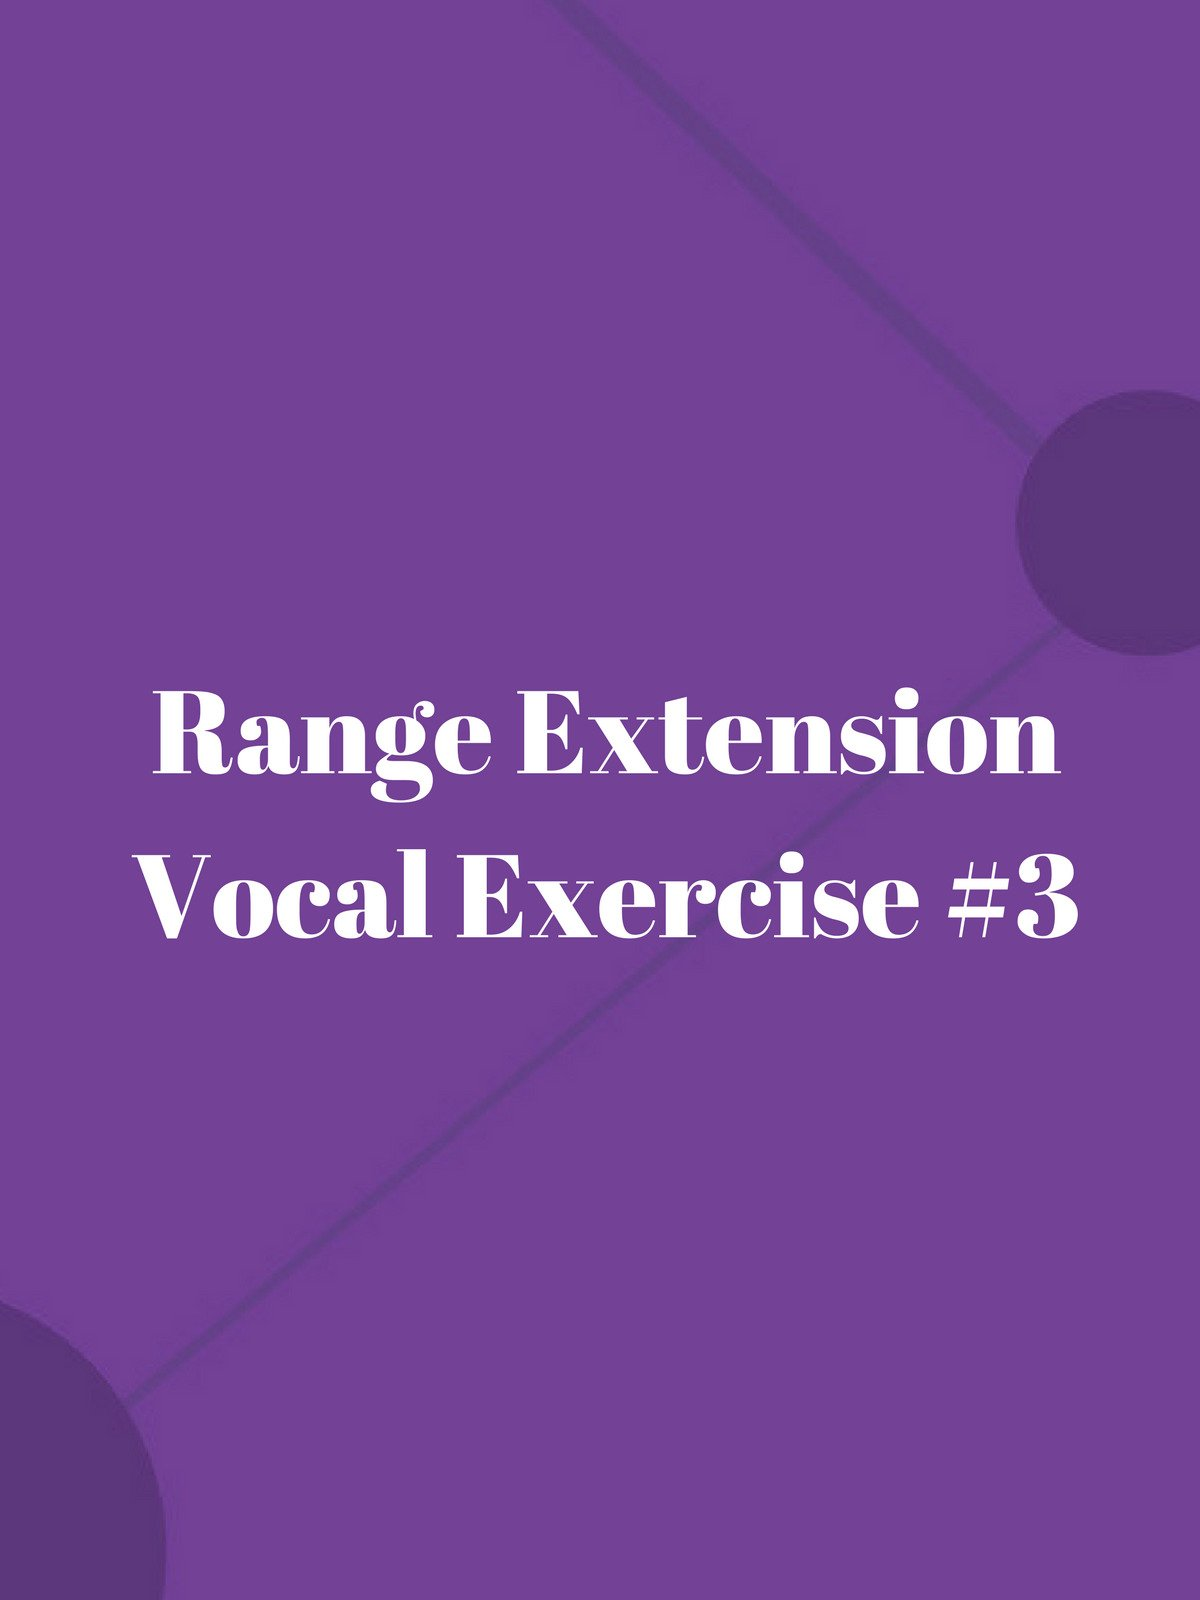 Range Extension Vocal Exercise #3